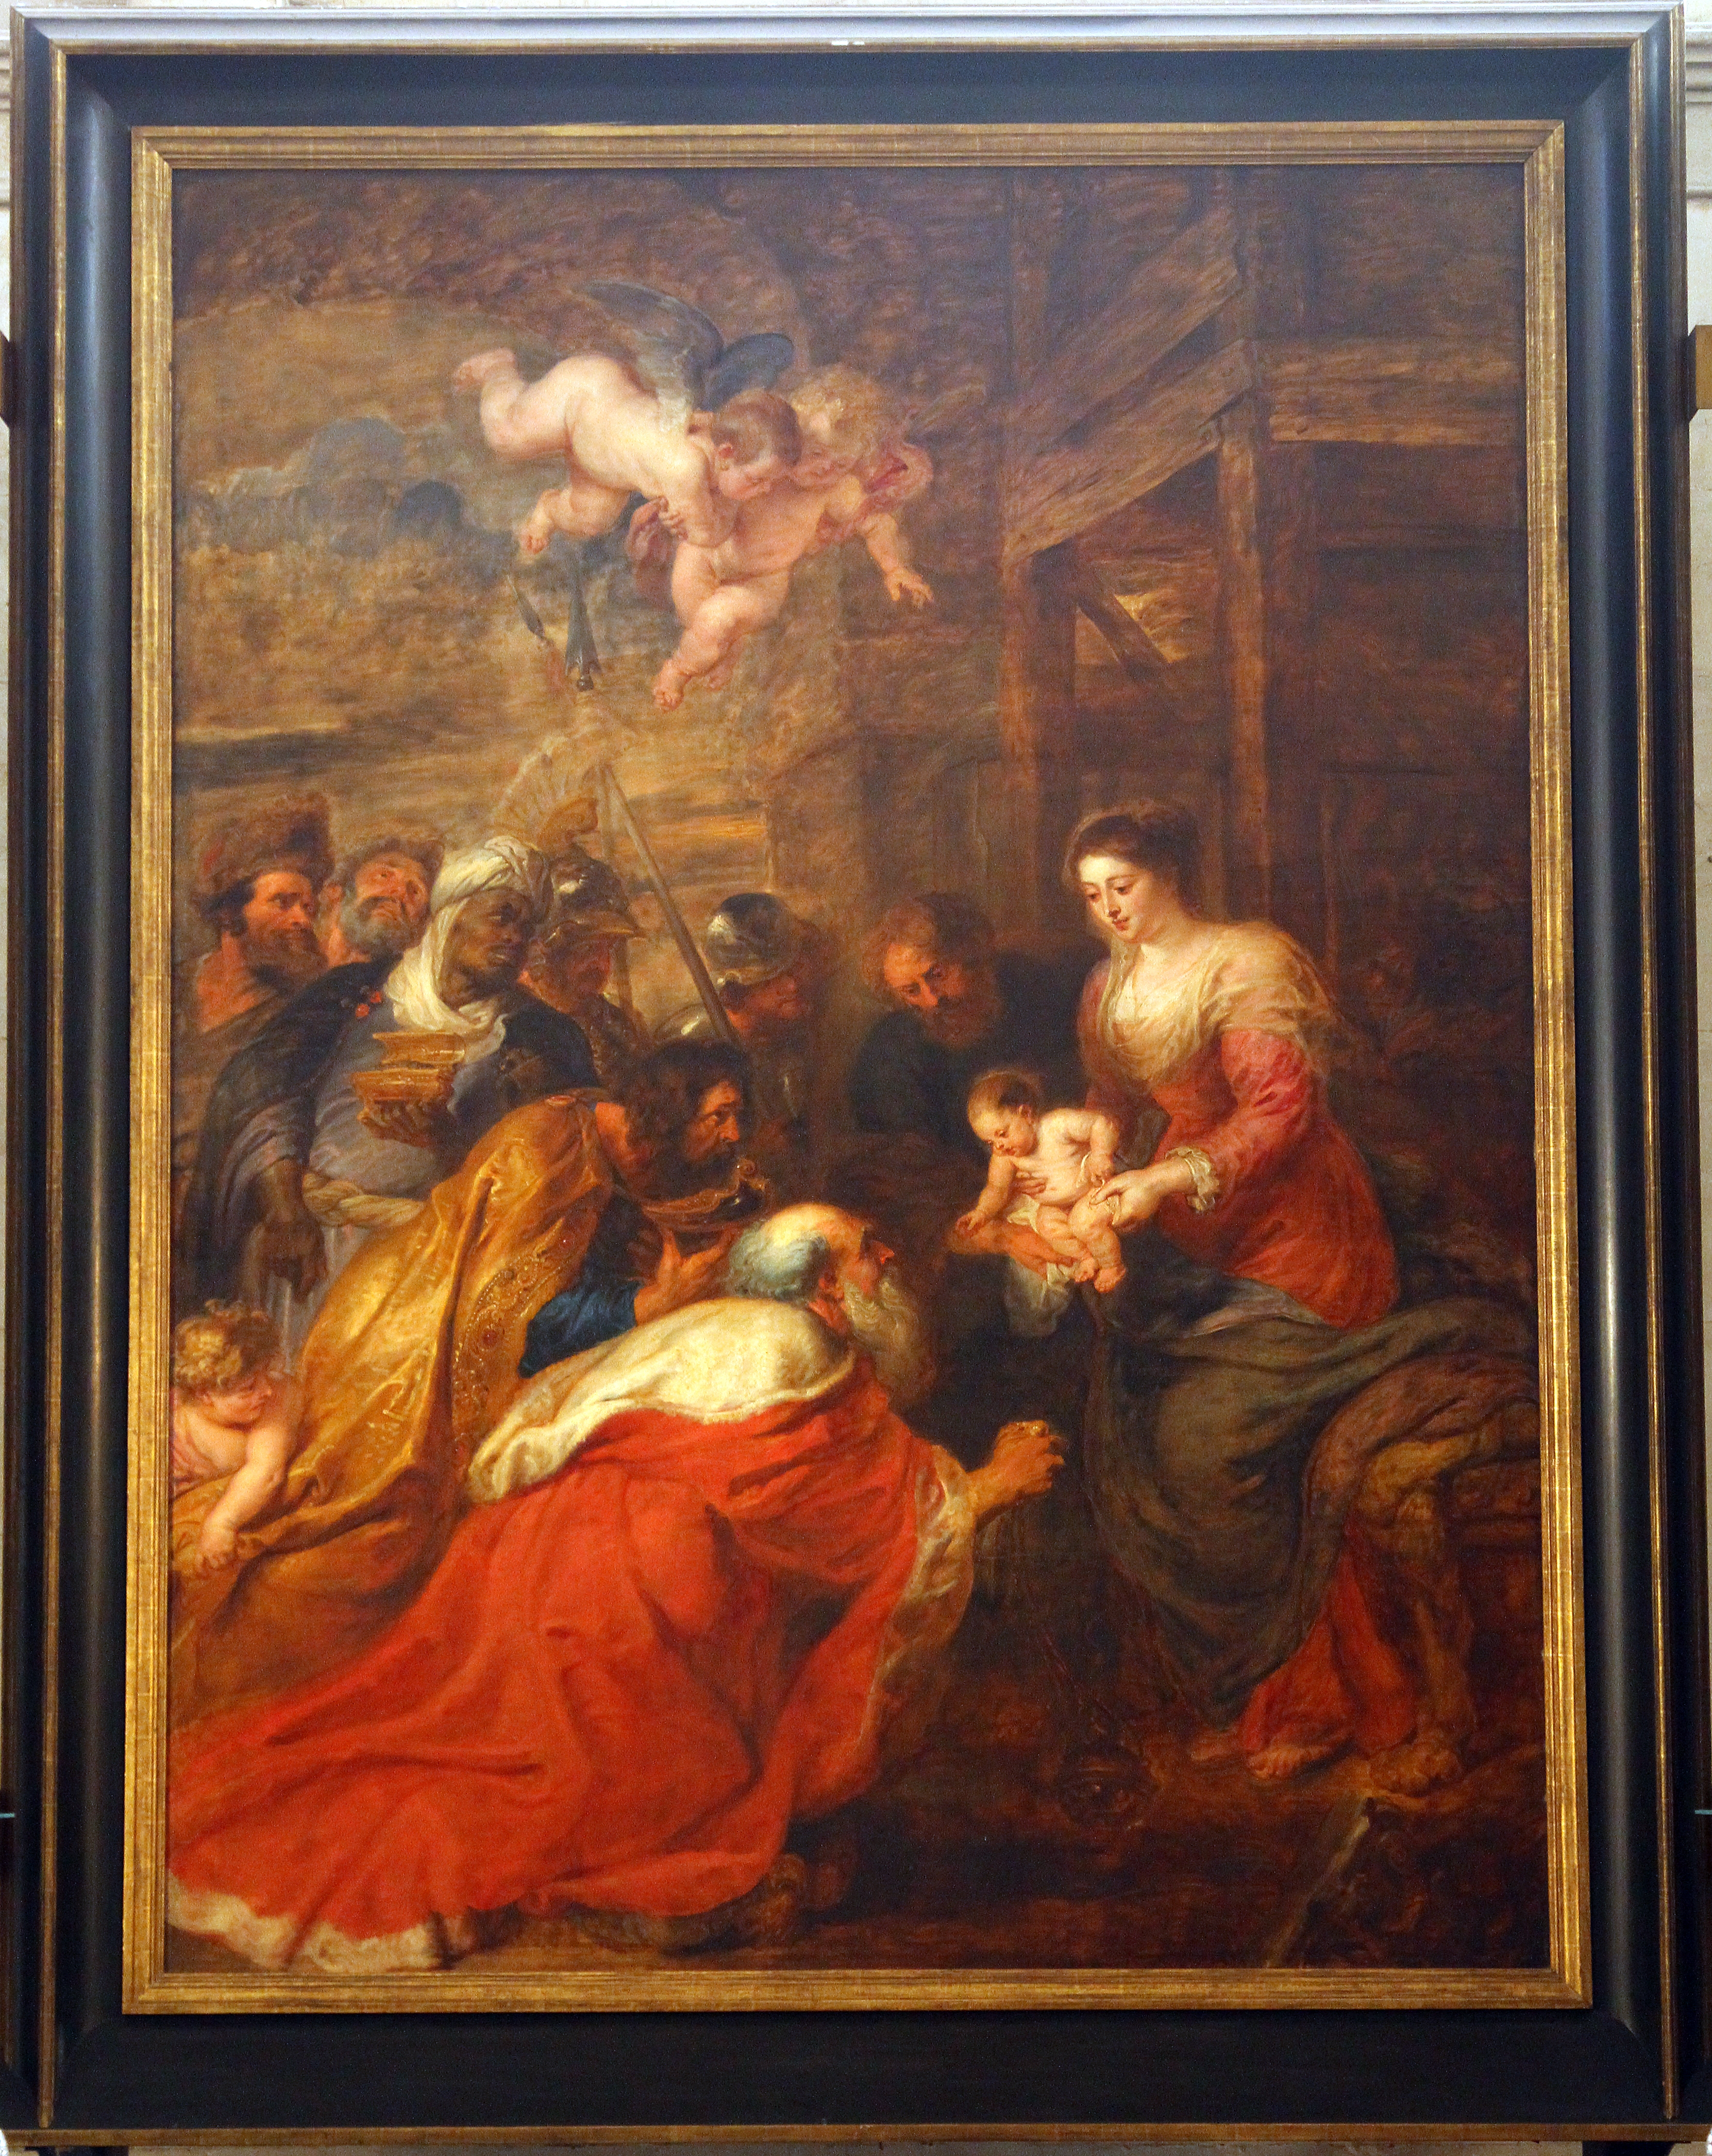 'The Adoration of the Magi' by Rubens, which forms the altarpiece of the Chapel